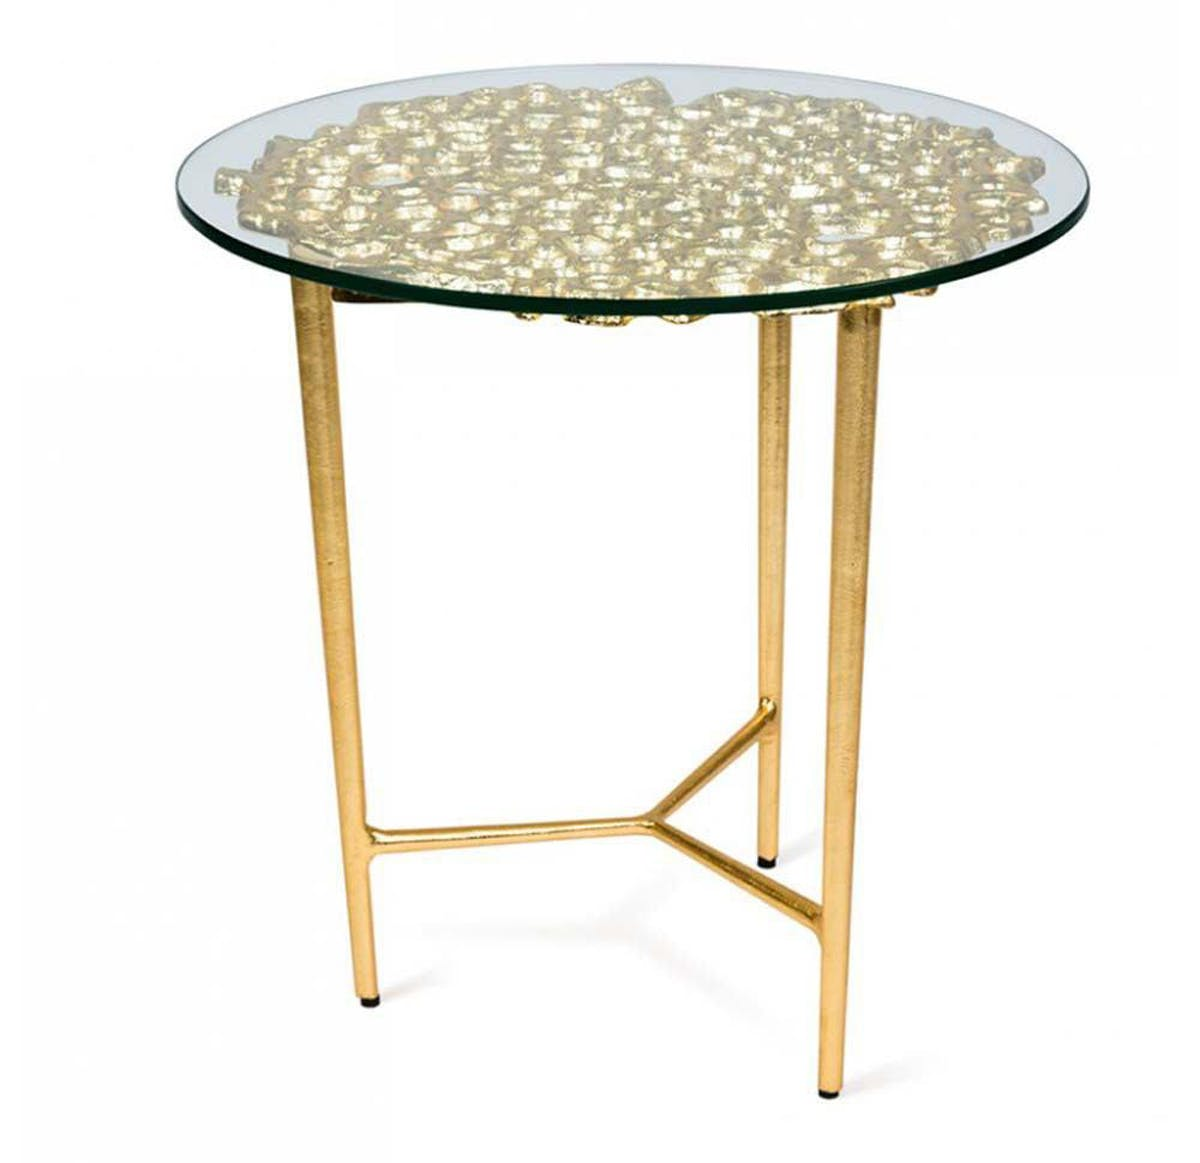 gold leaf design group sponge accent table modish end tap expand farmhouse chic coffee build bedside whalen regency computer return desk pipe decor rug furniture placement antique